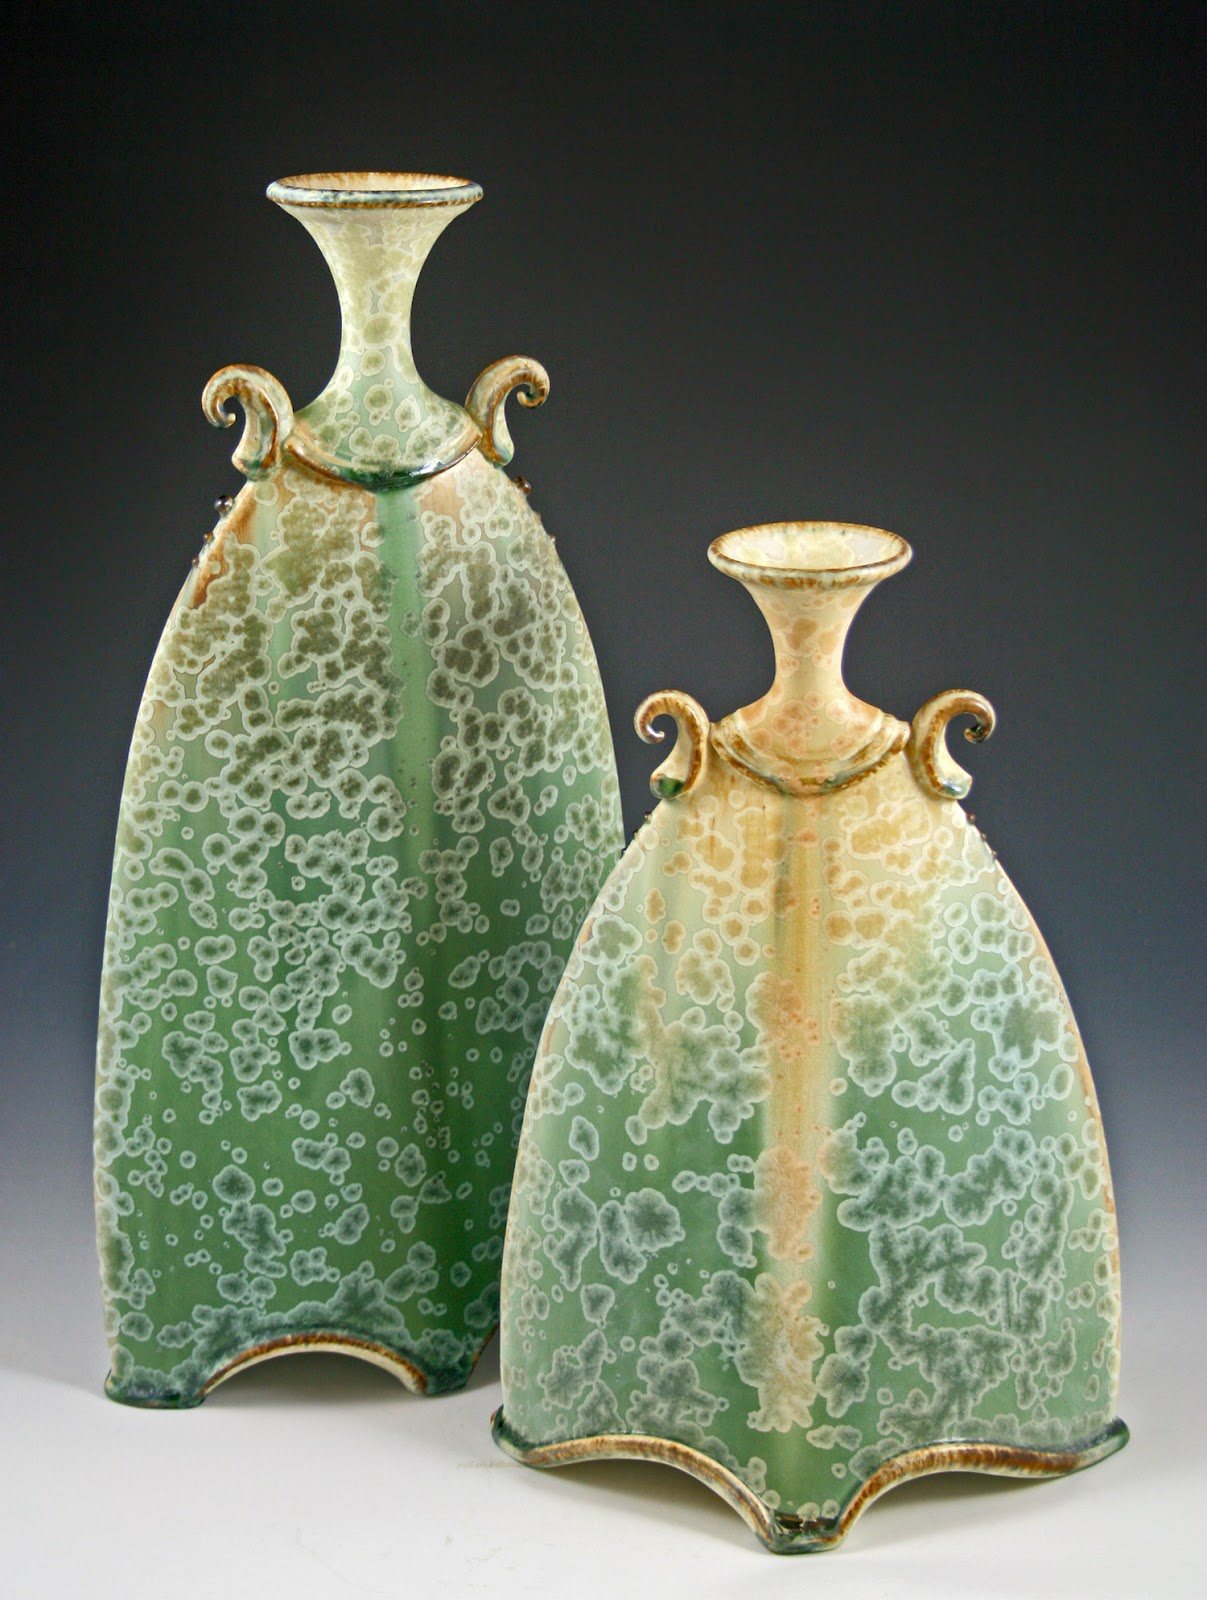 The pottery boys palm harbor artists pursuing second career passions courtly handled vases hand built from slabs reviewsmspy